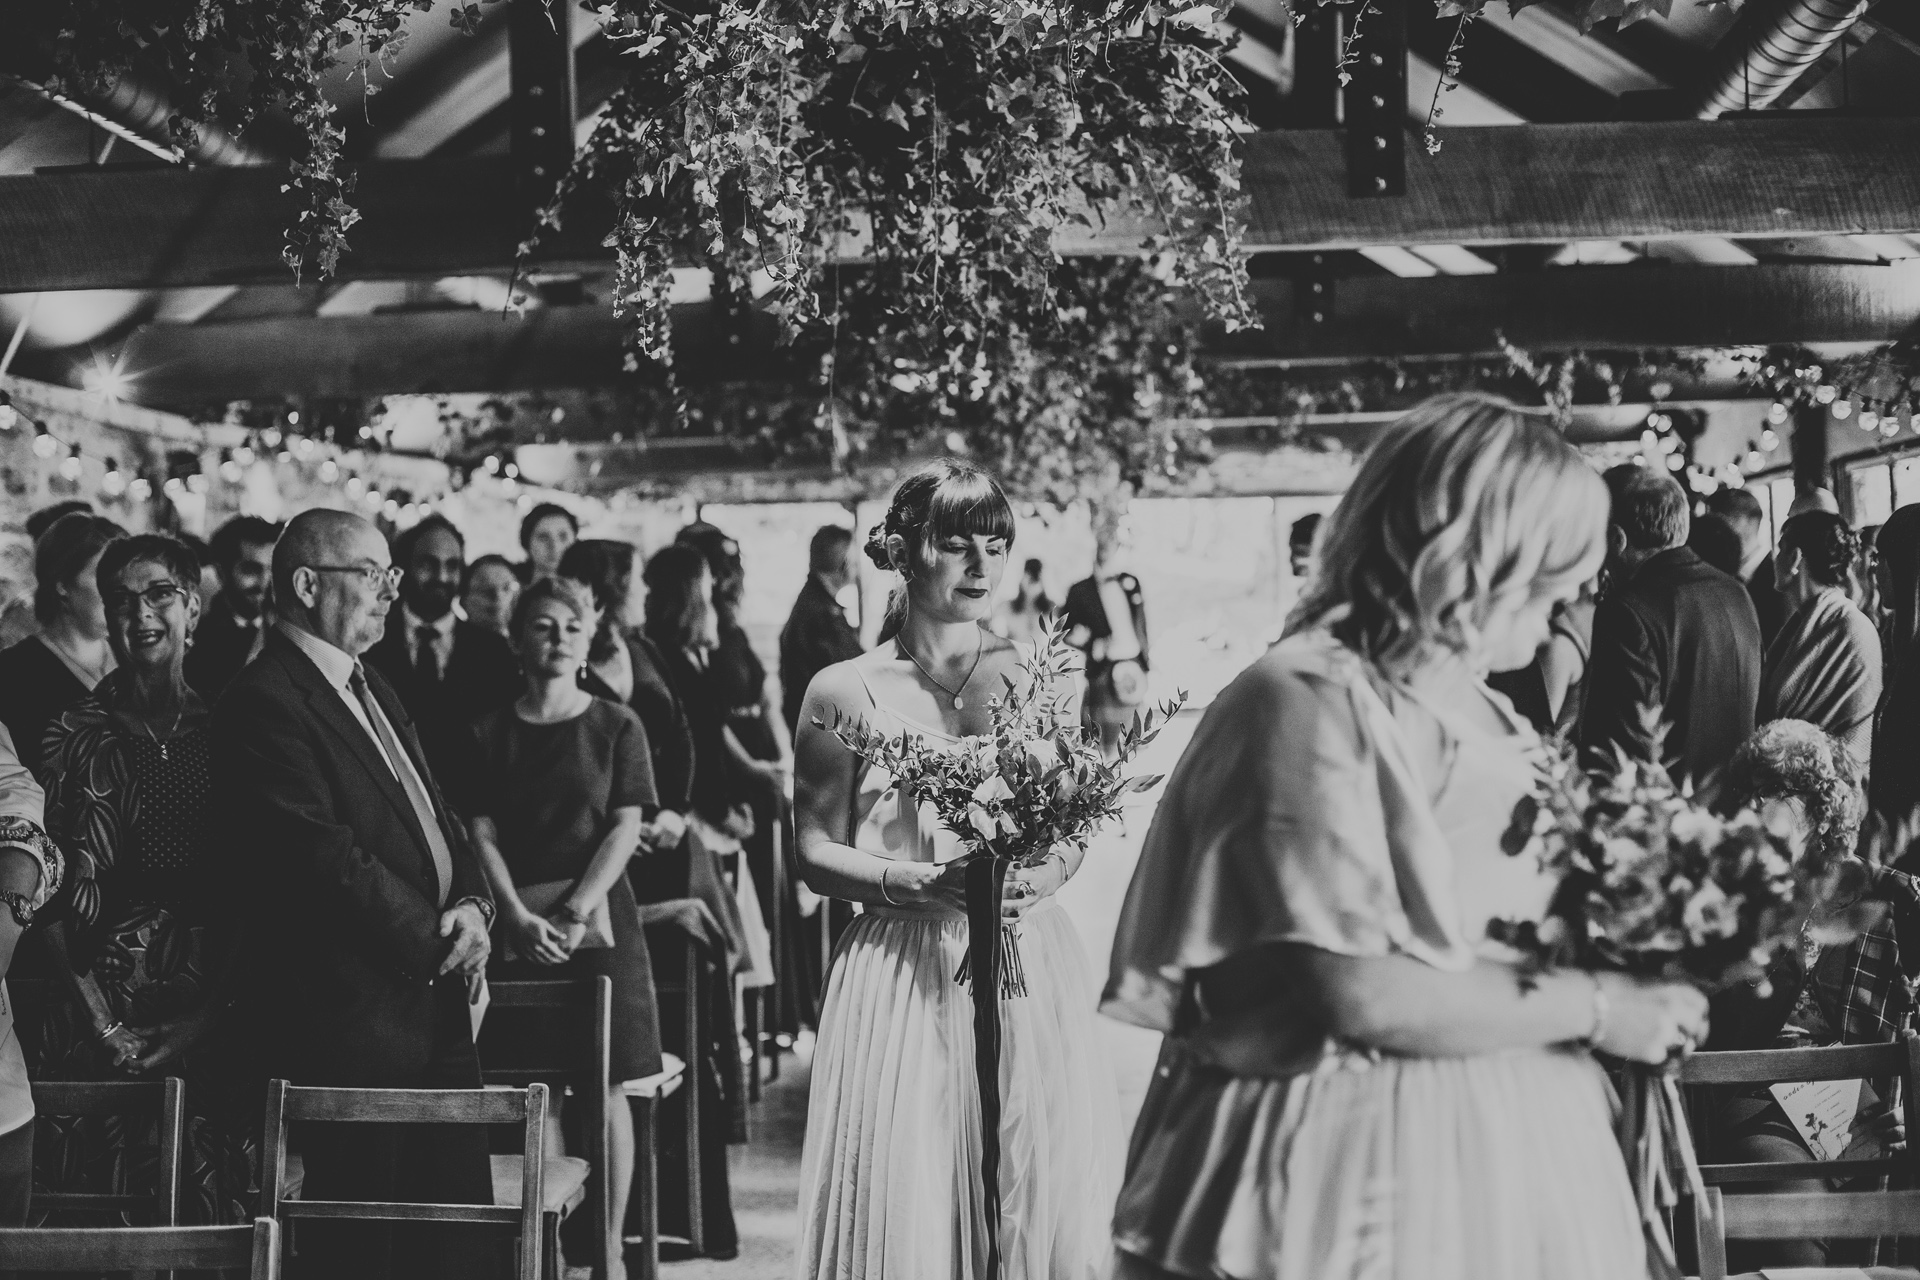 Third bridesmaid walks down the aisle. Photograph in black and white.